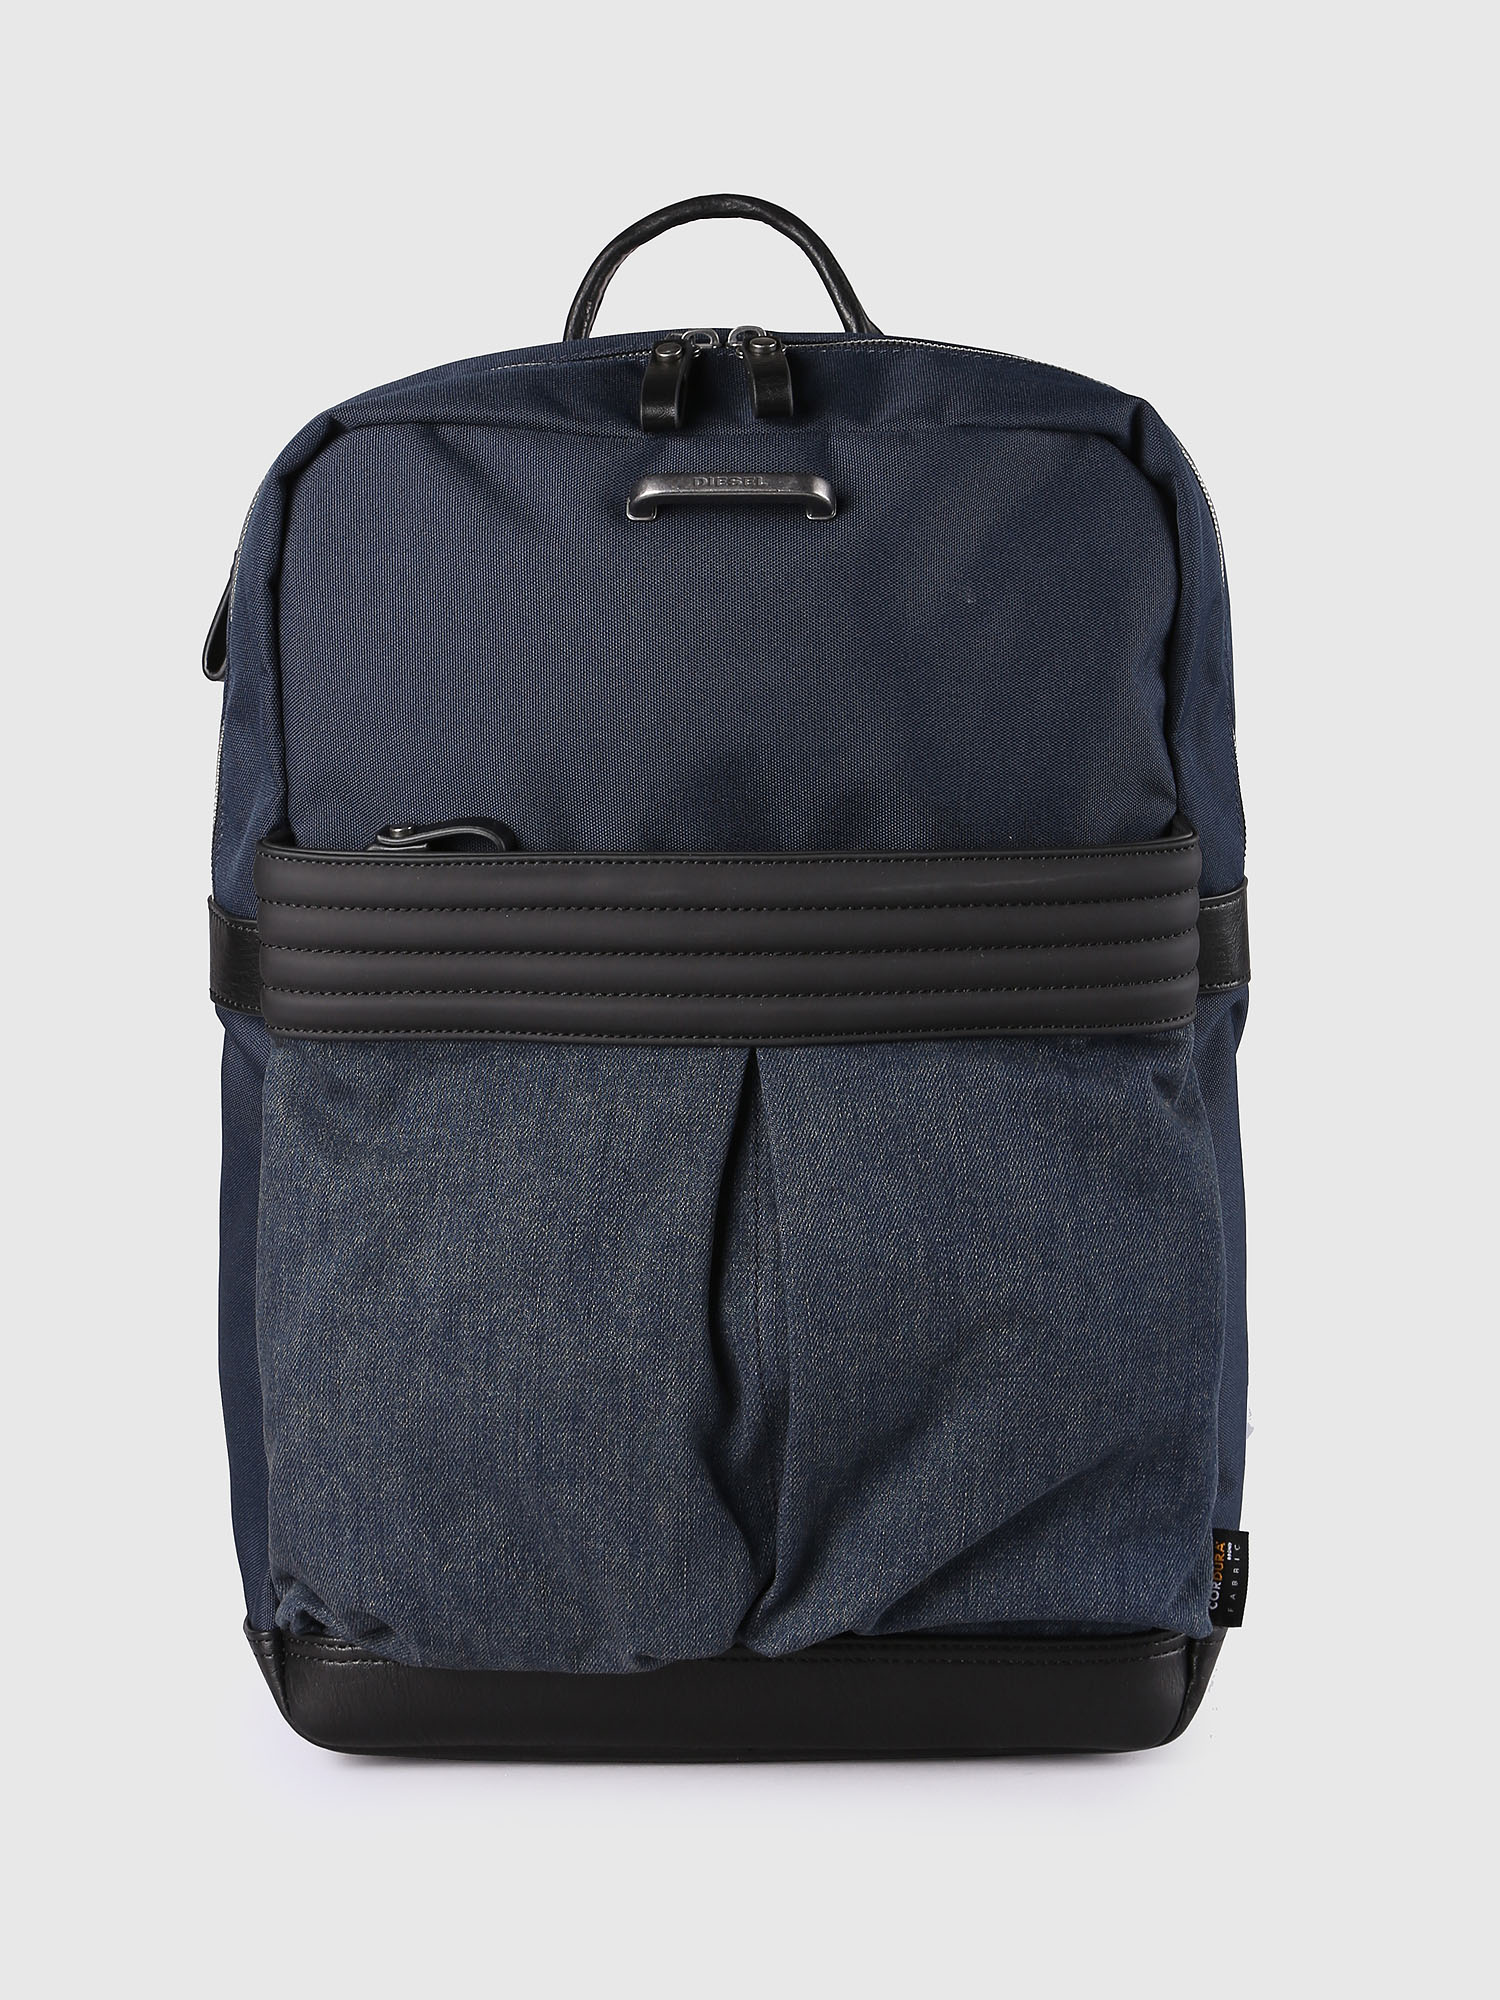 Diesel - M-PROOF BACK,  - Zaini - Image 1